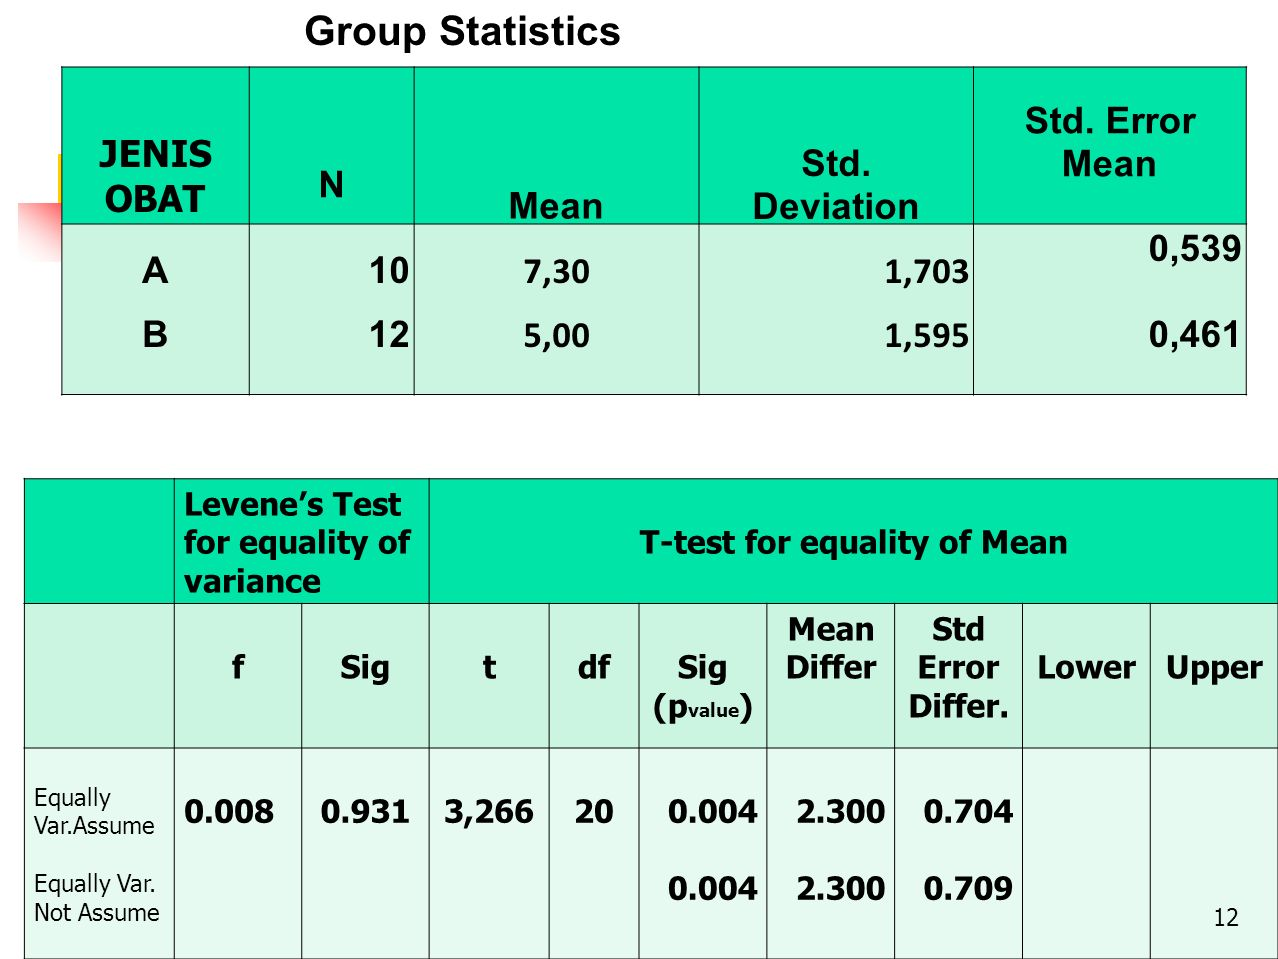 T-test for equality of Mean